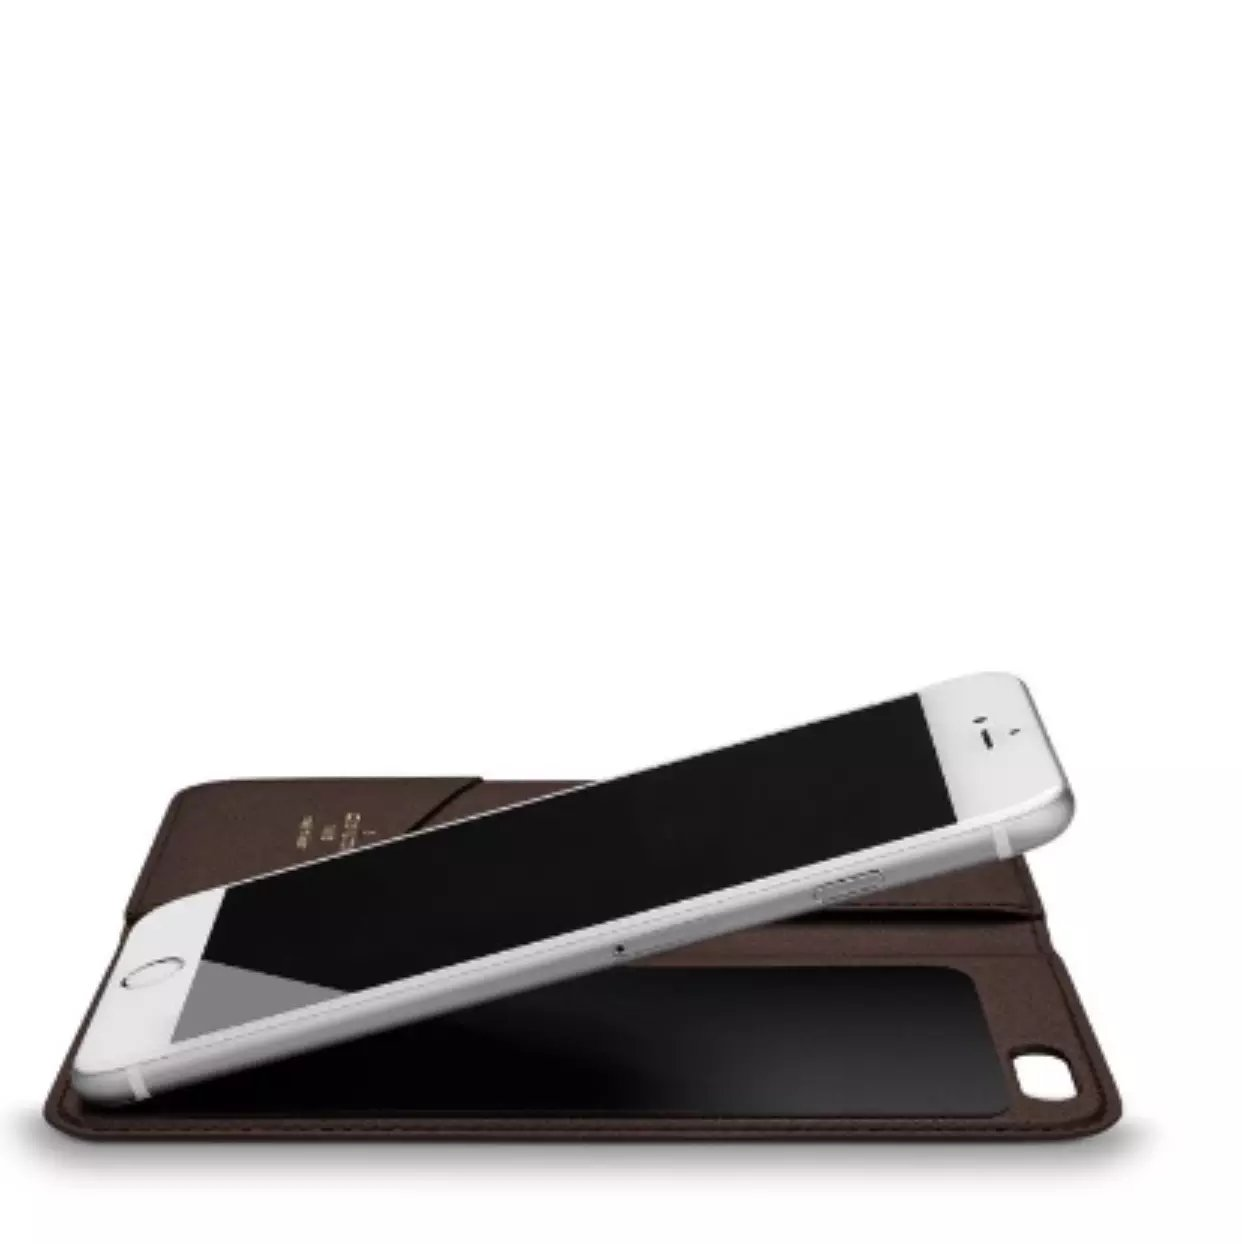 iphone hülle online shop handyhülle iphone selbst gestalten Louis Vuitton iphone7 Plus hülle iphone 6 bilder iphone 7 Plus hülle marken iphone hülle hamburg i phine 6 iphone 3gs hülle iphone 3 6